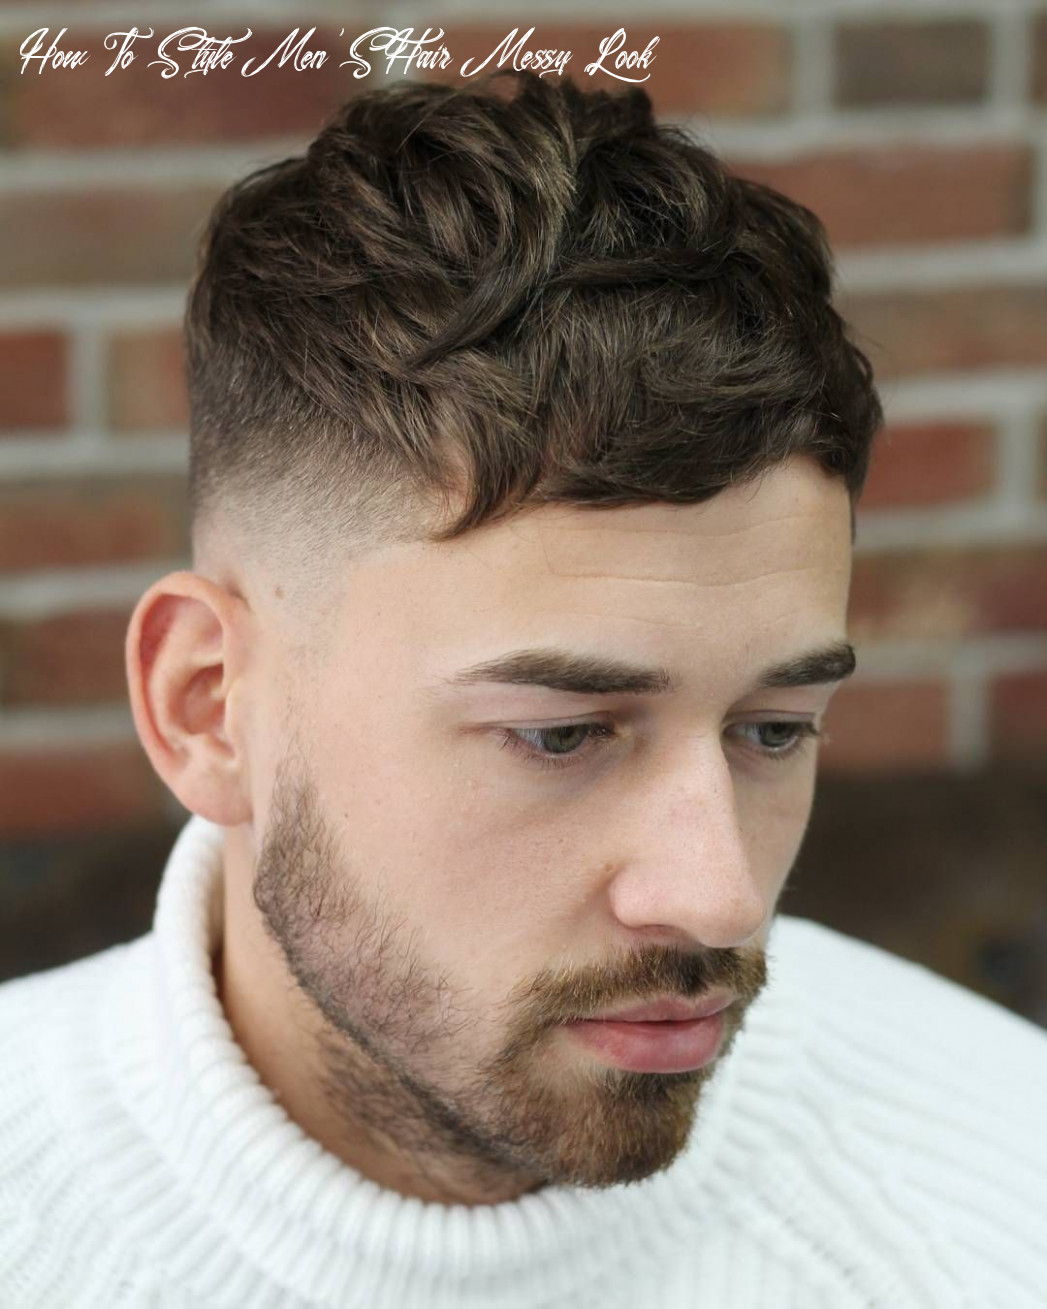 11 cool short haircuts hairstyles for men (11 update)   new